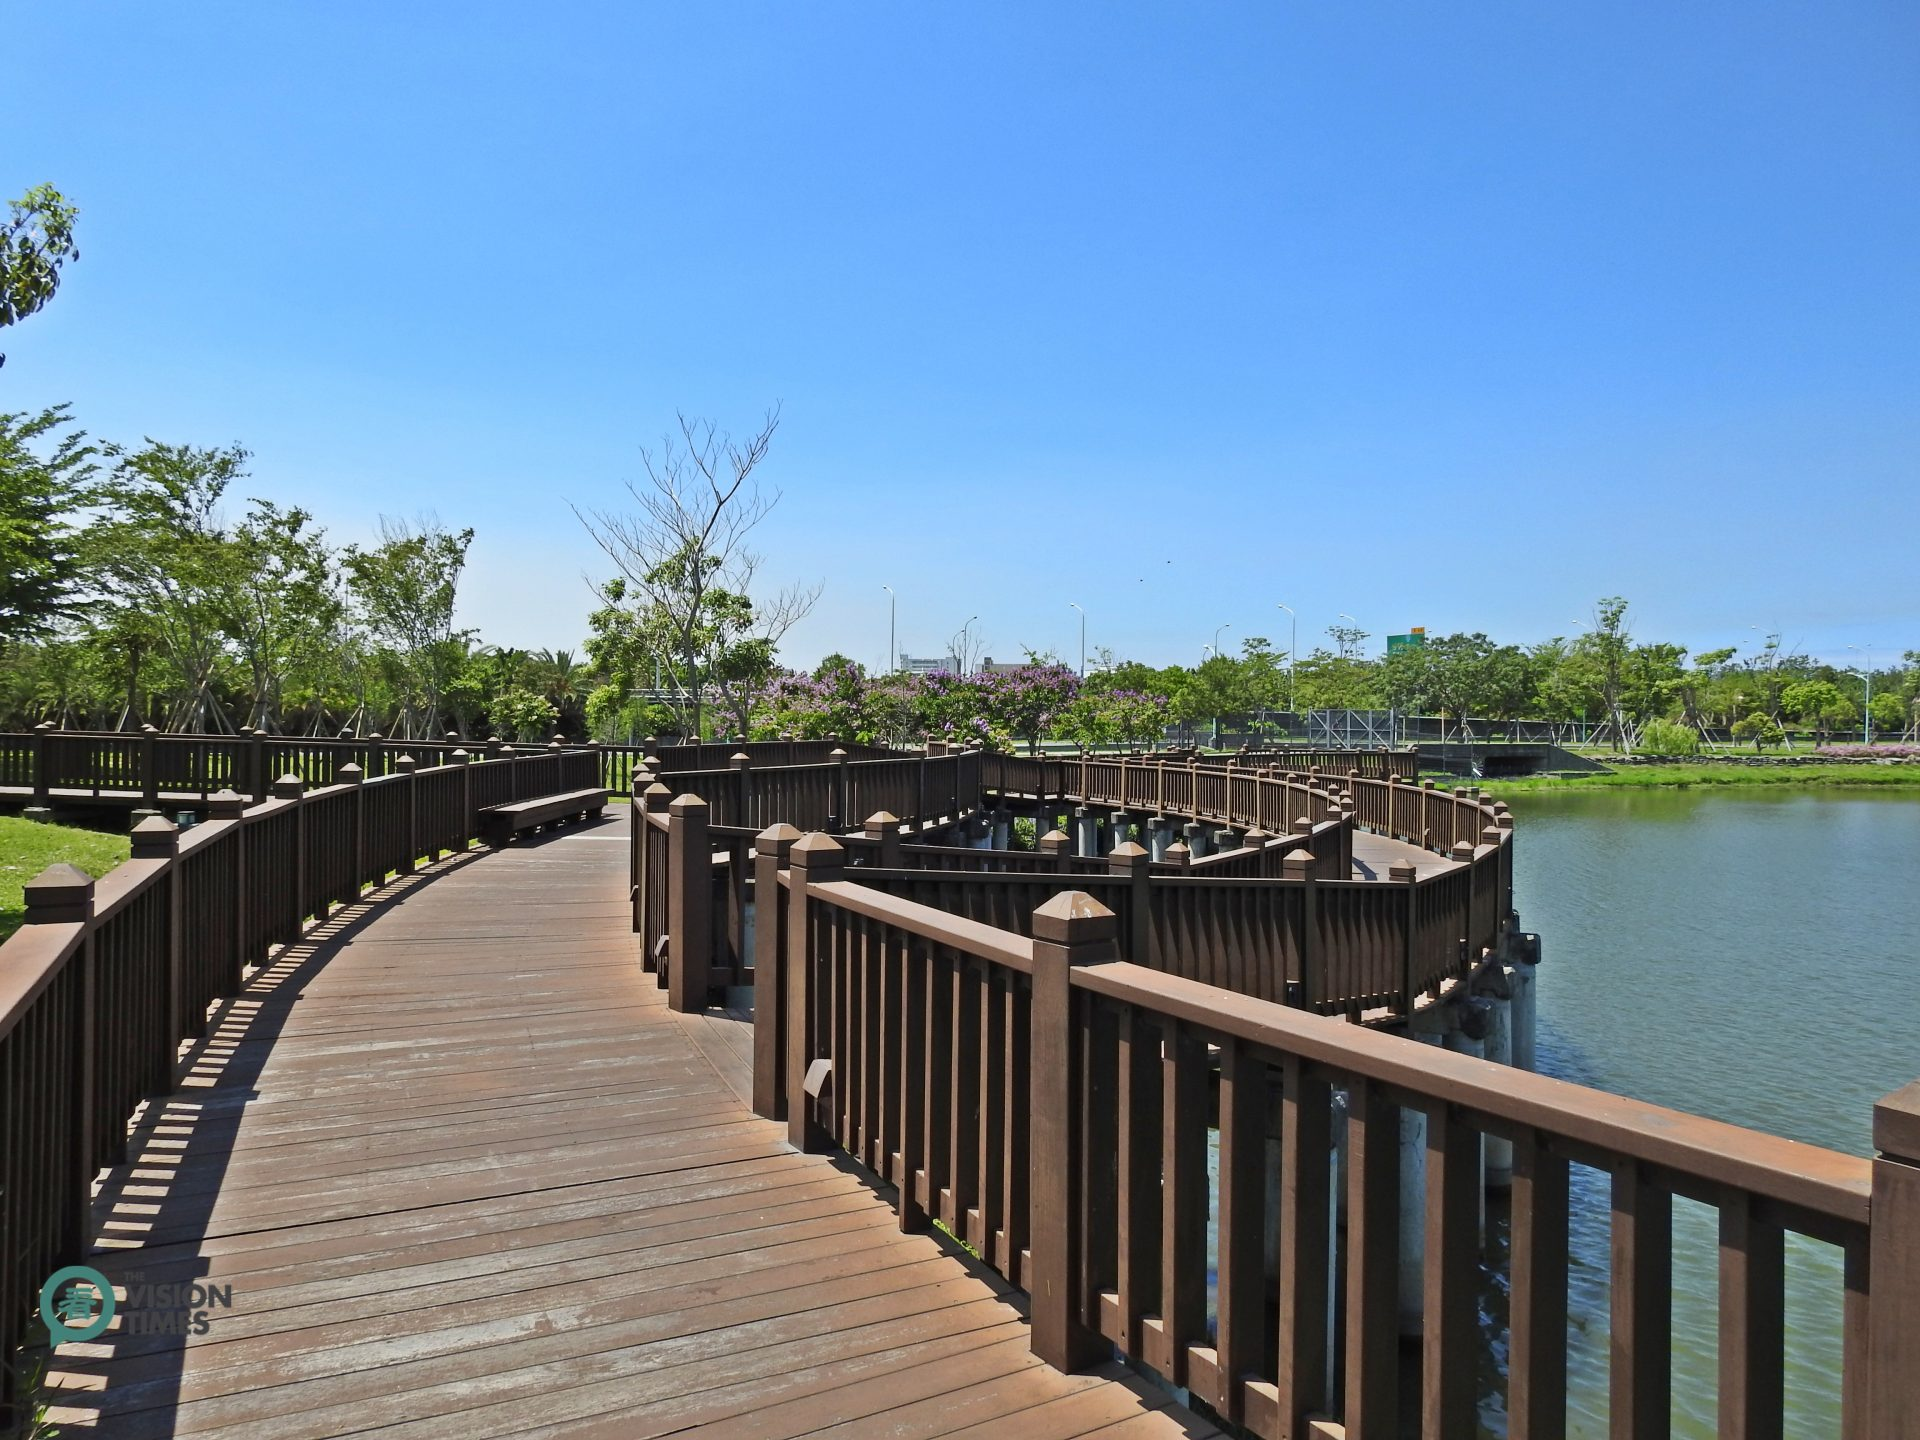 One of the elevated wooden paths along the lake in the museum compound. (Image: Billy Shyu / Vision Times)